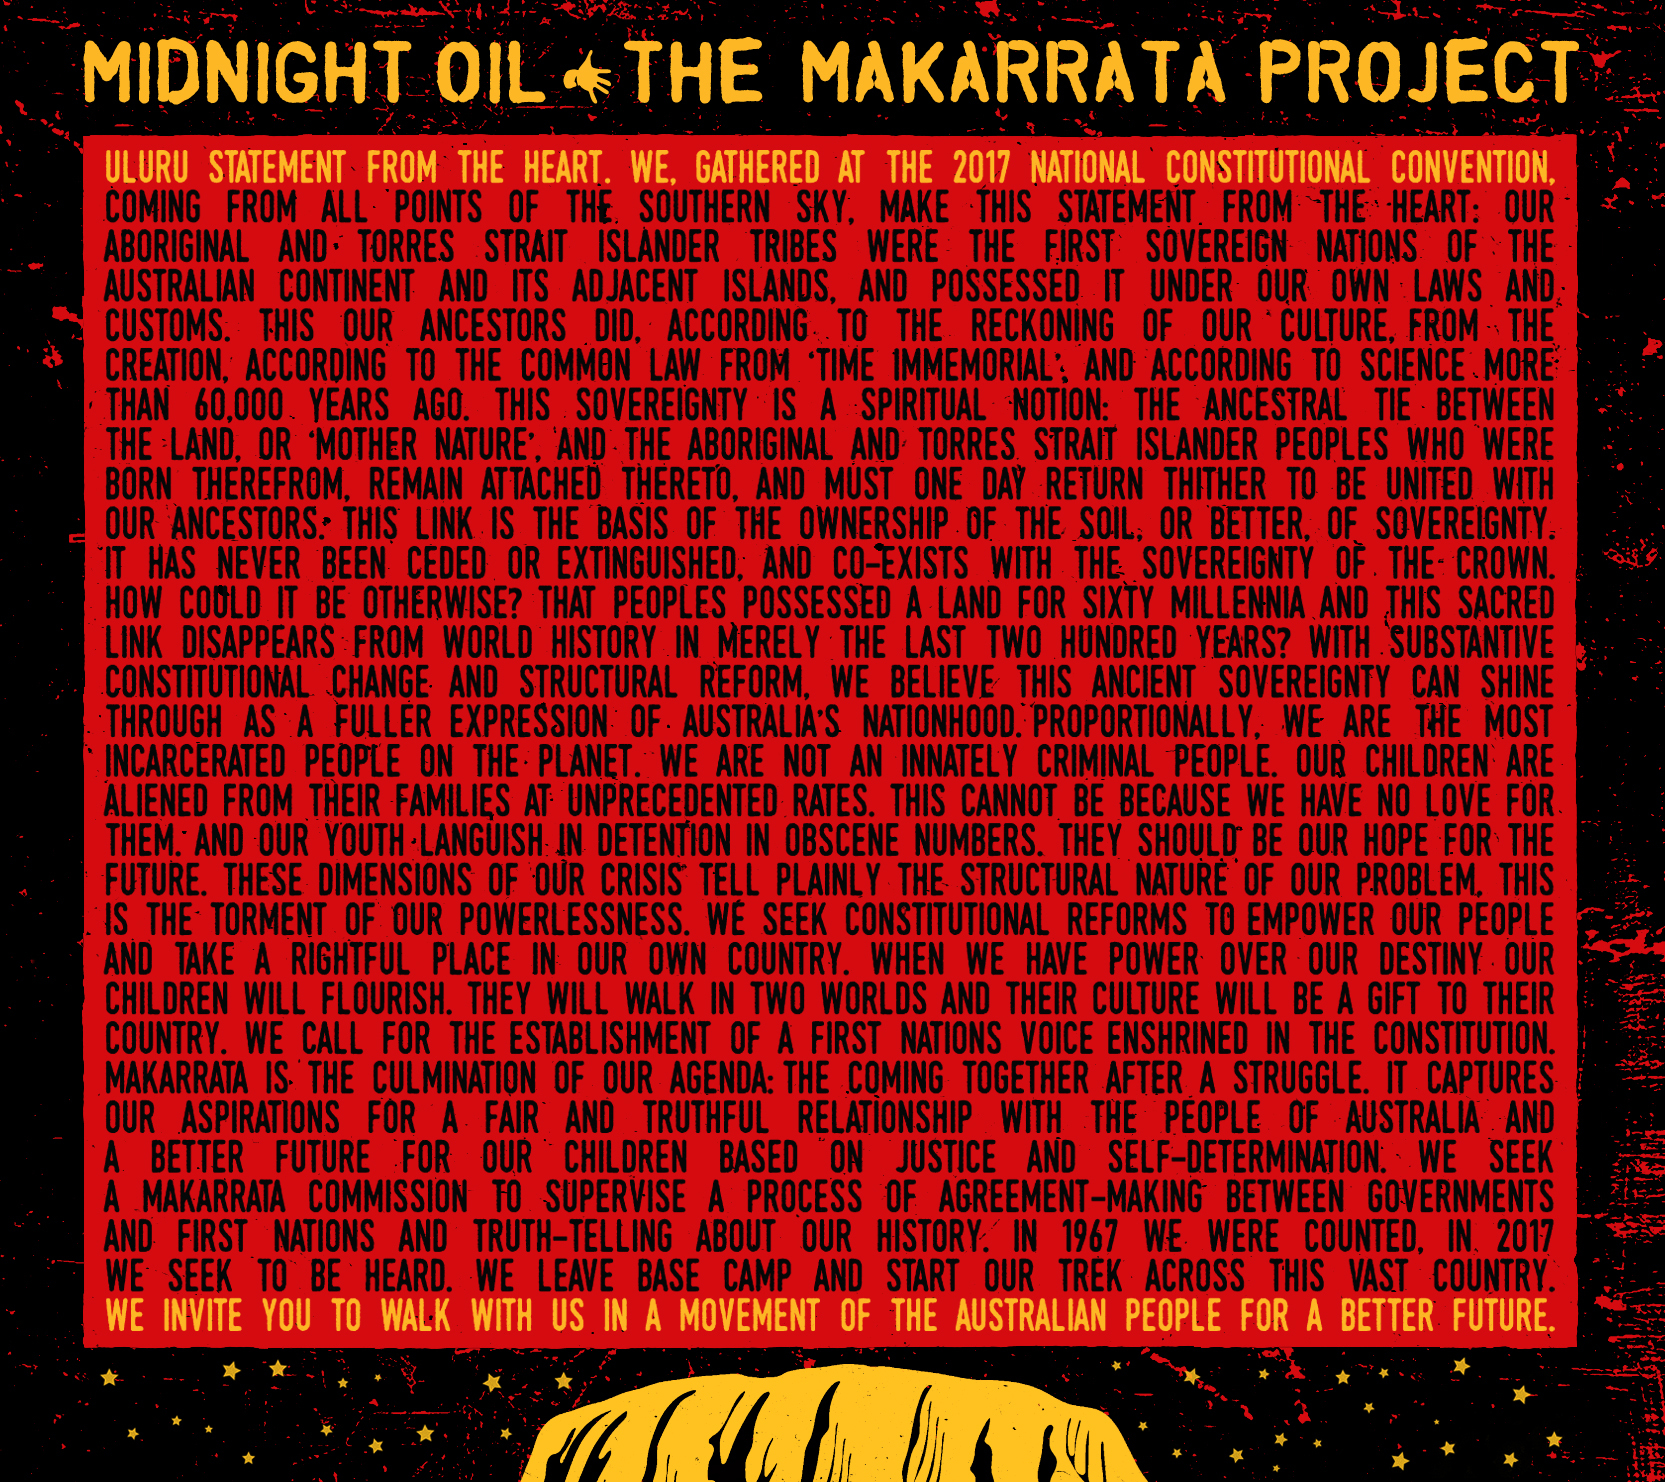 THE MAKARRATA PROJECT out now